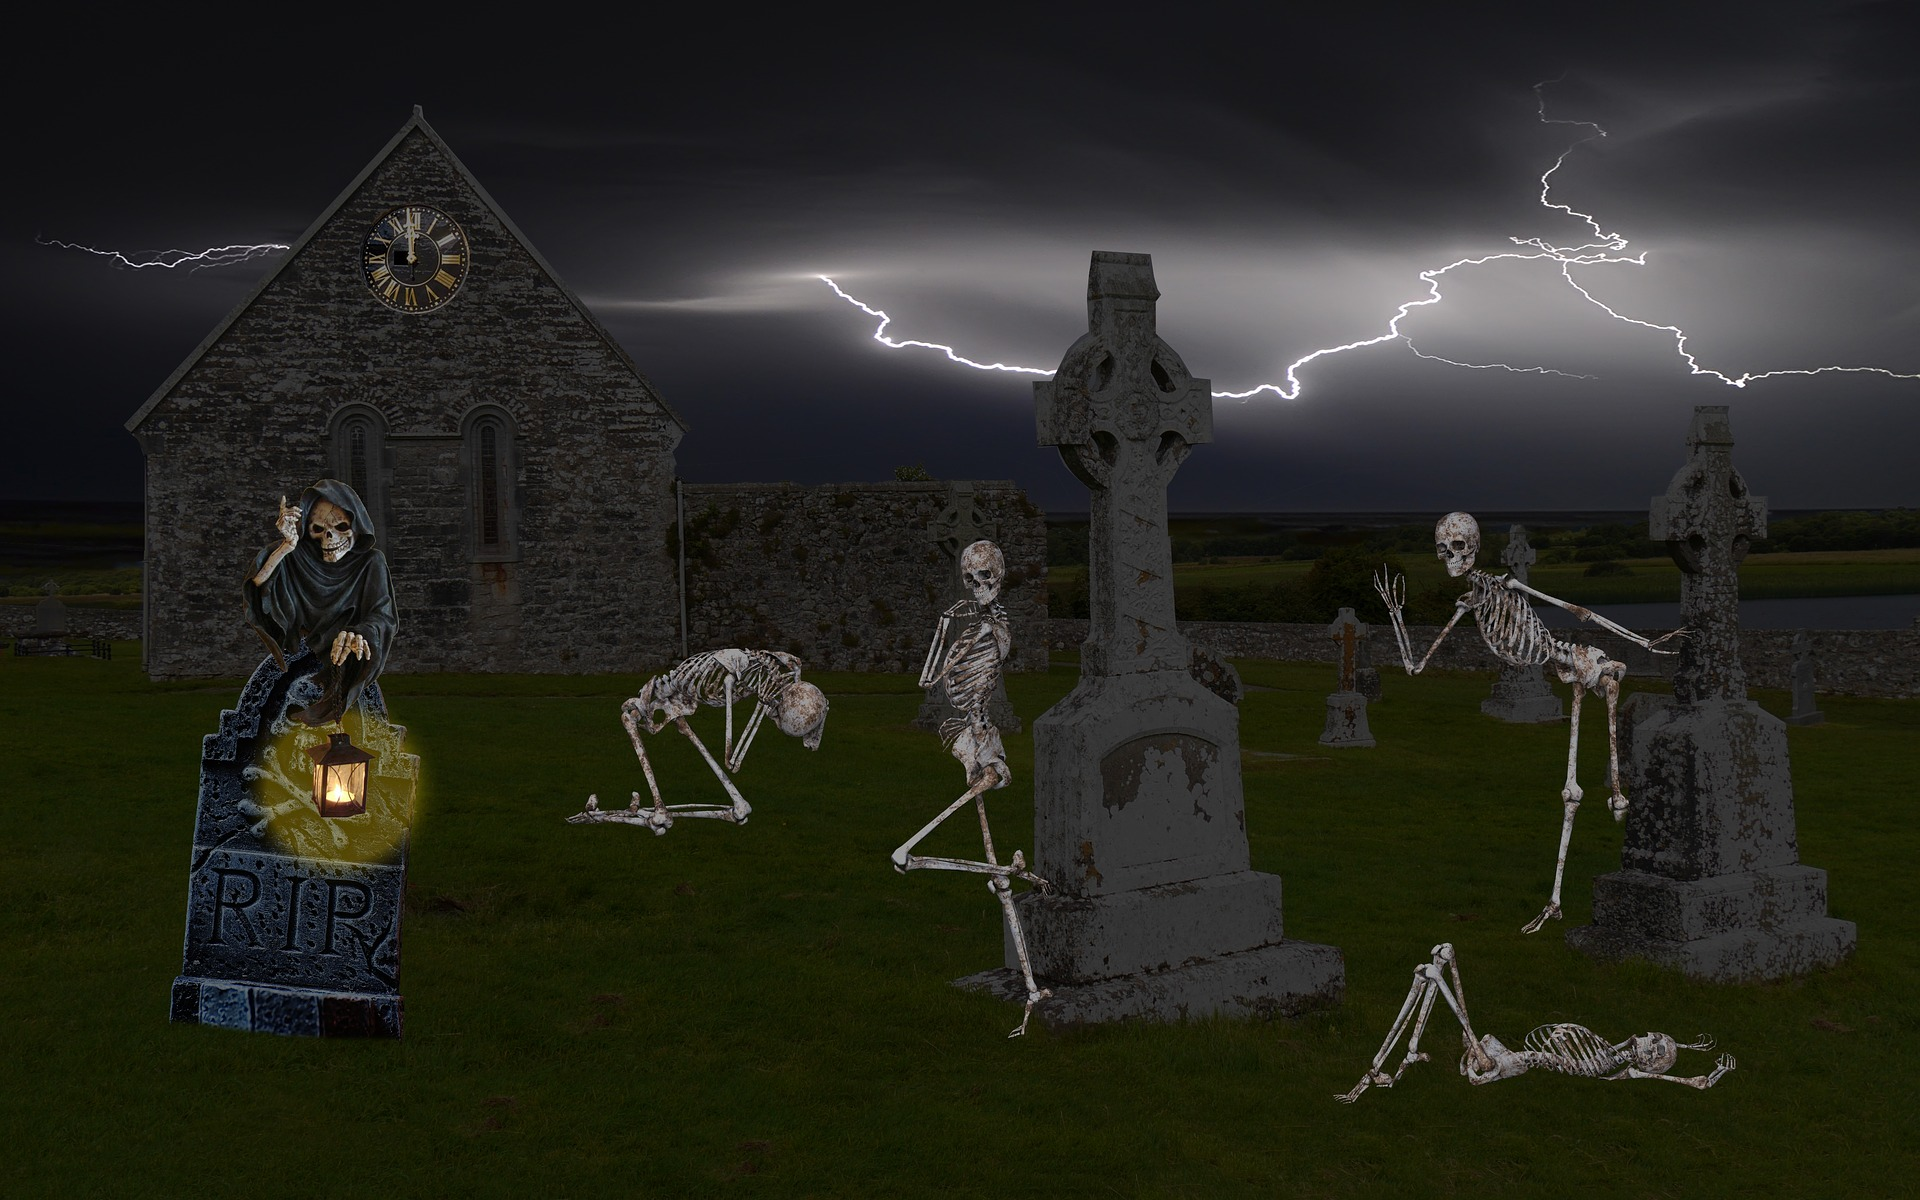 These must be some LGBTQ+ skeletons because they are coming out for Hallowe'en with camp, great dance poses, and absolutely no clothing!